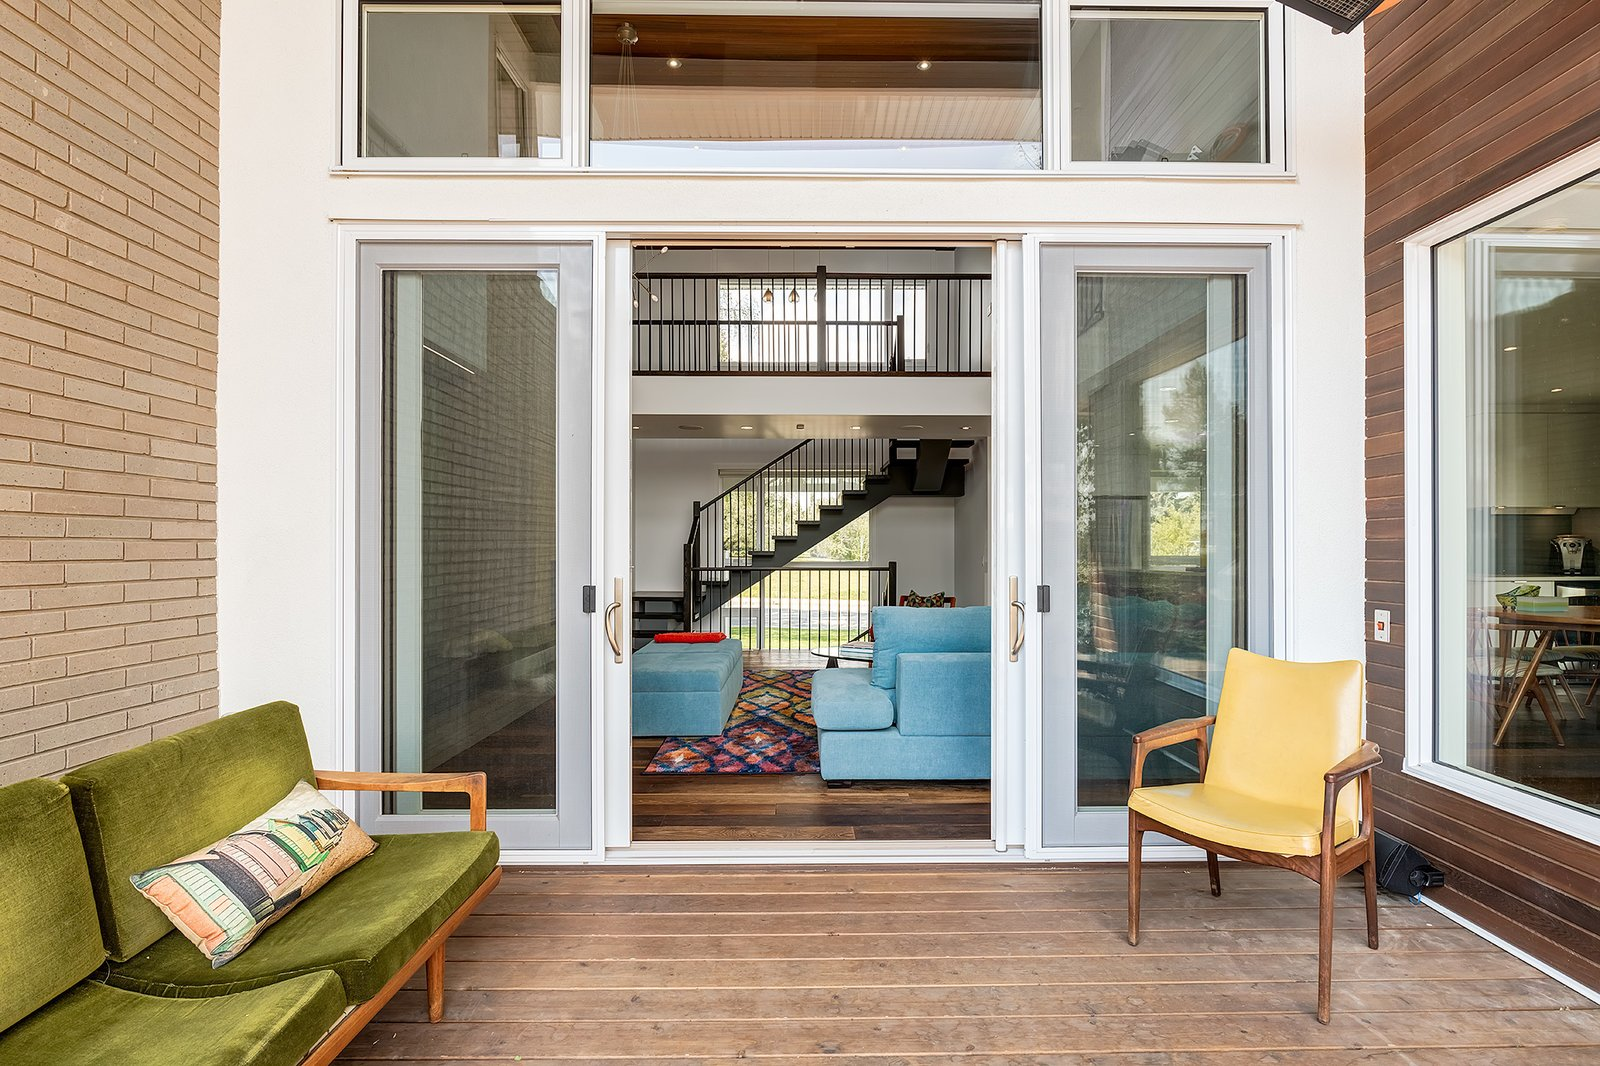 """The homeowners love to watch golf, and so the outdoor space was designed so that the T.V. can be easily viewed for comfortable, outdoor summertime golf watching,"" Lewis said. Vintage pieces furnish an outdoor deck of stained cedar.  A Calgary Home Makes Space for Three Generations by Kelly Dawson"